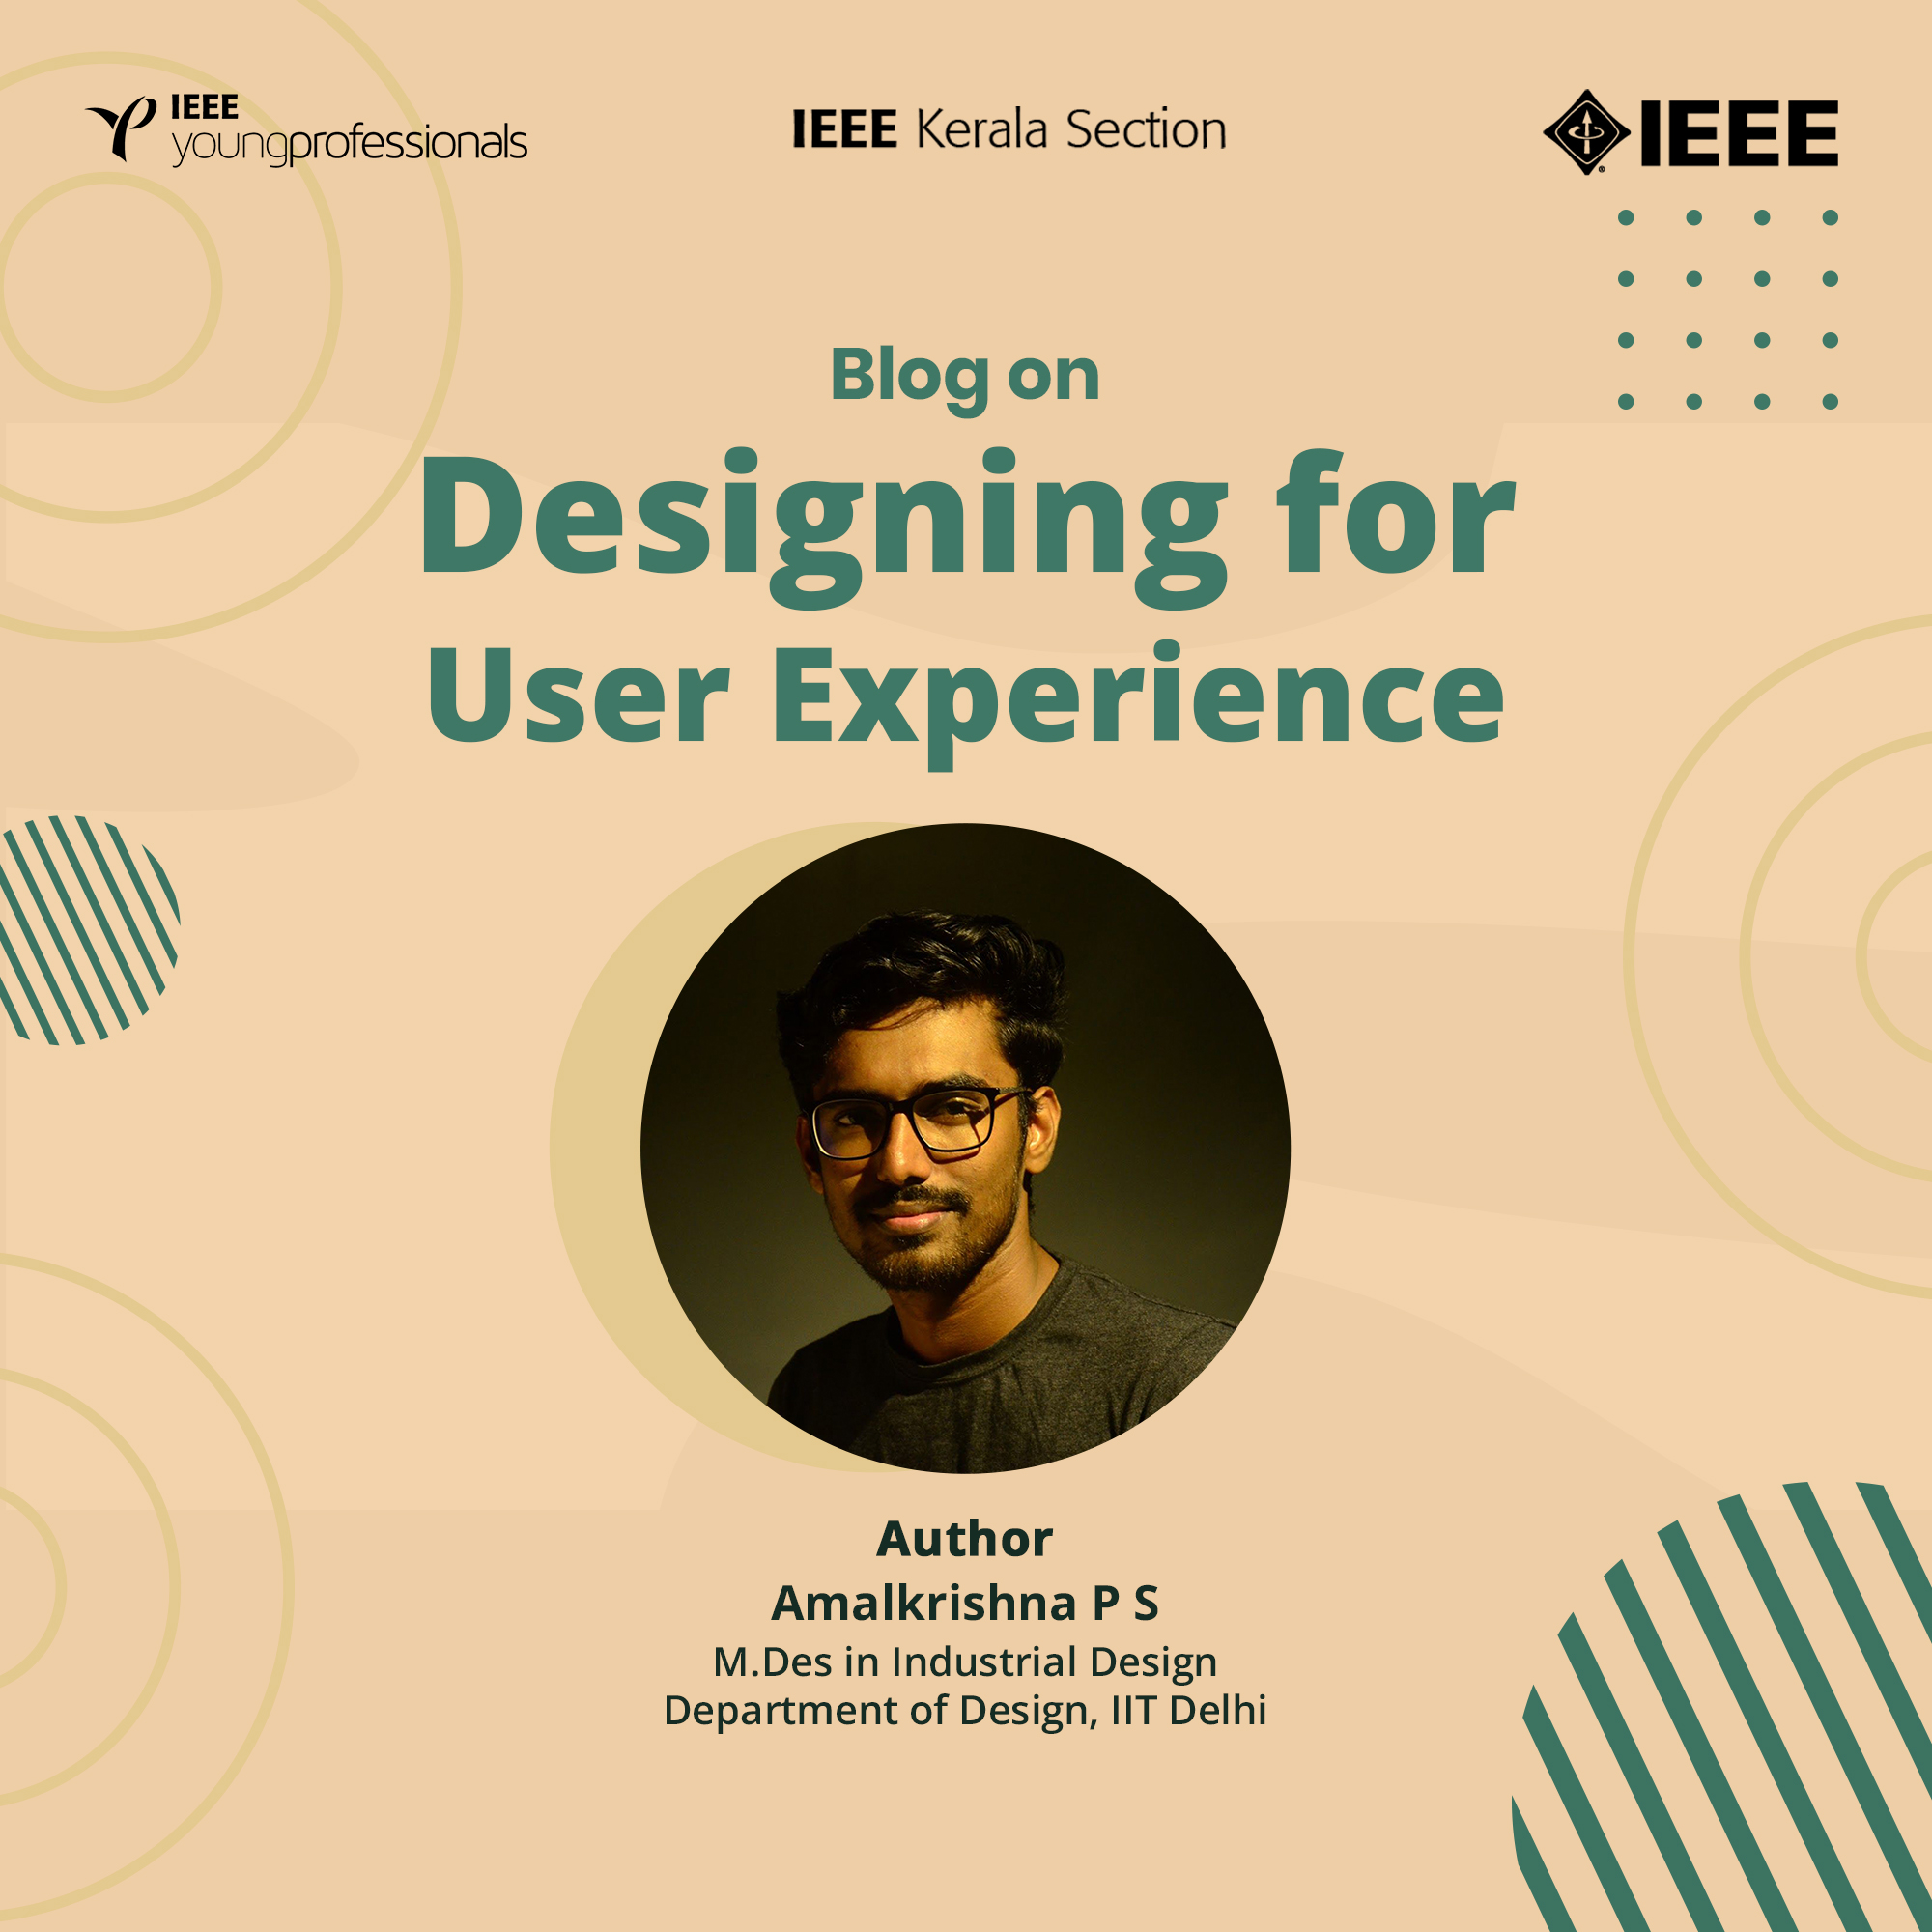 Designing for User Experience : An Overview